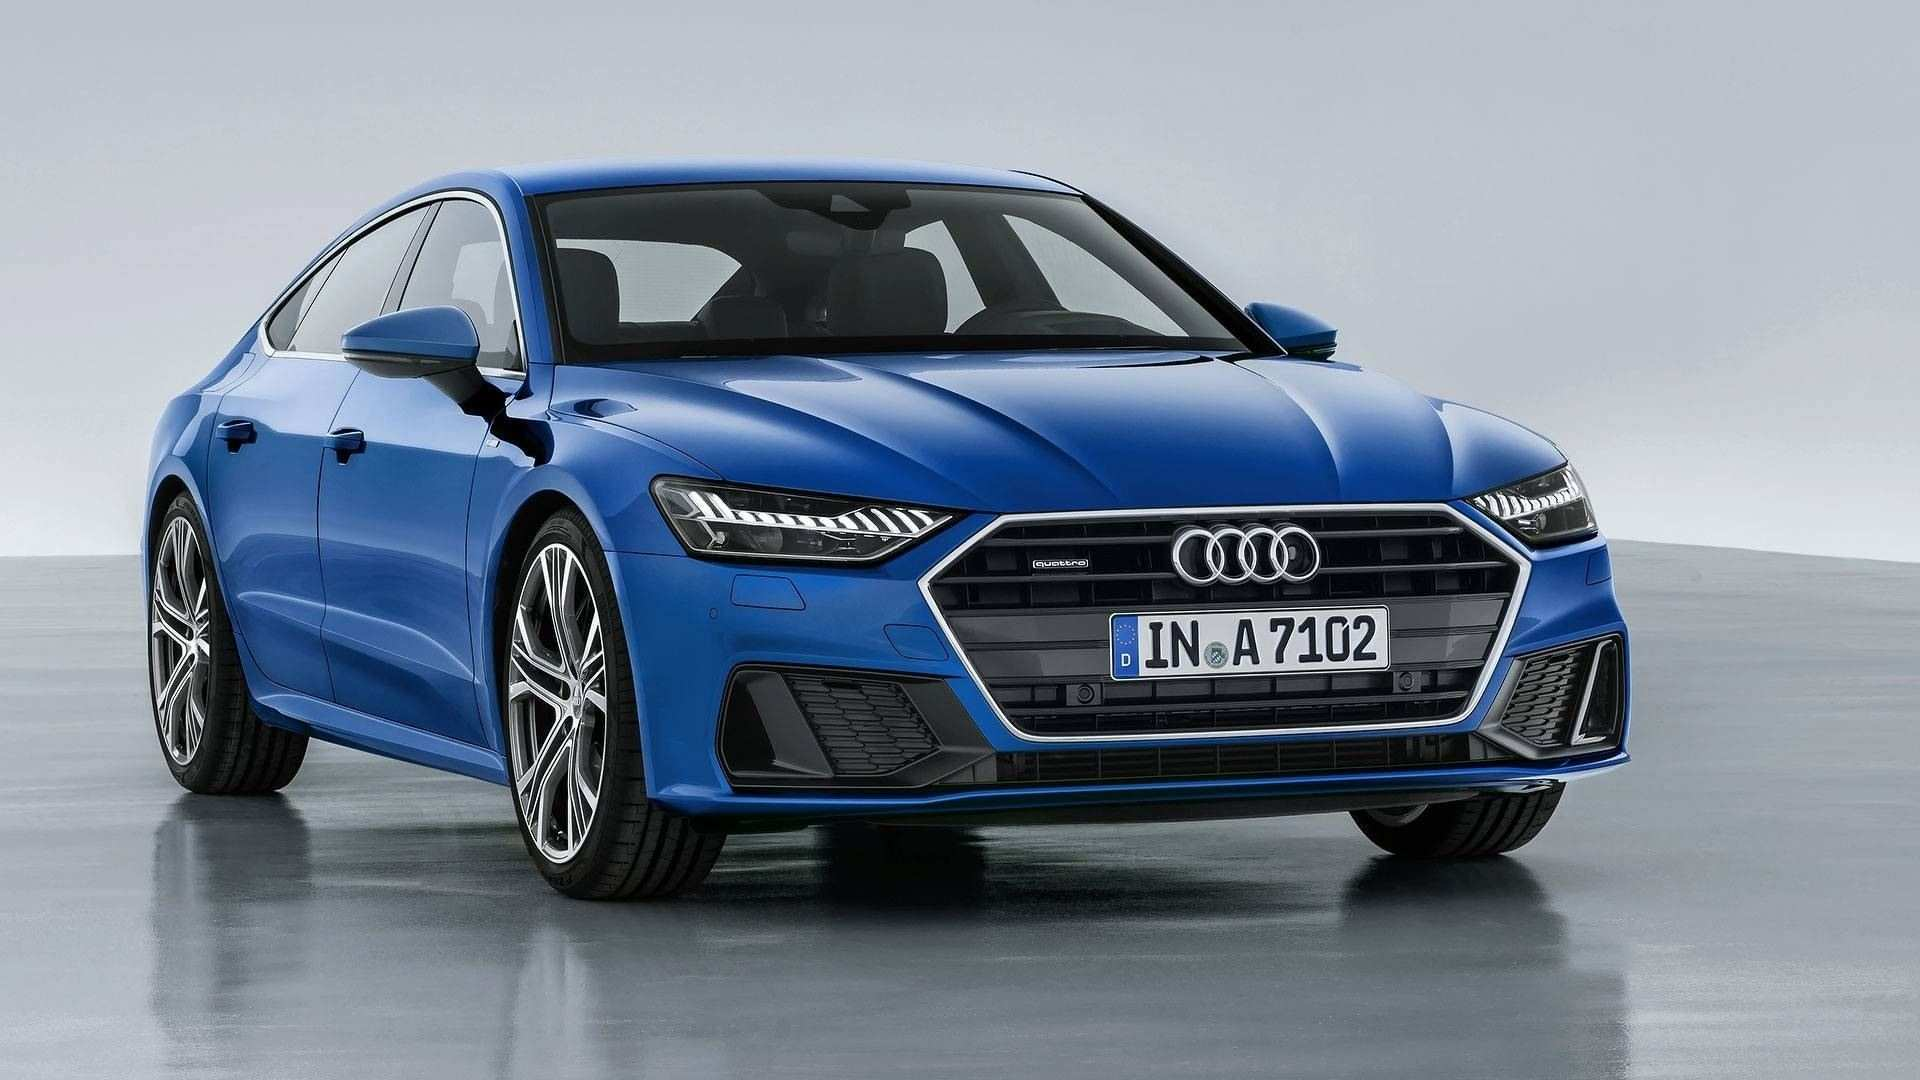 23 Great 2020 Audi A7 Colors Style for 2020 Audi A7 Colors